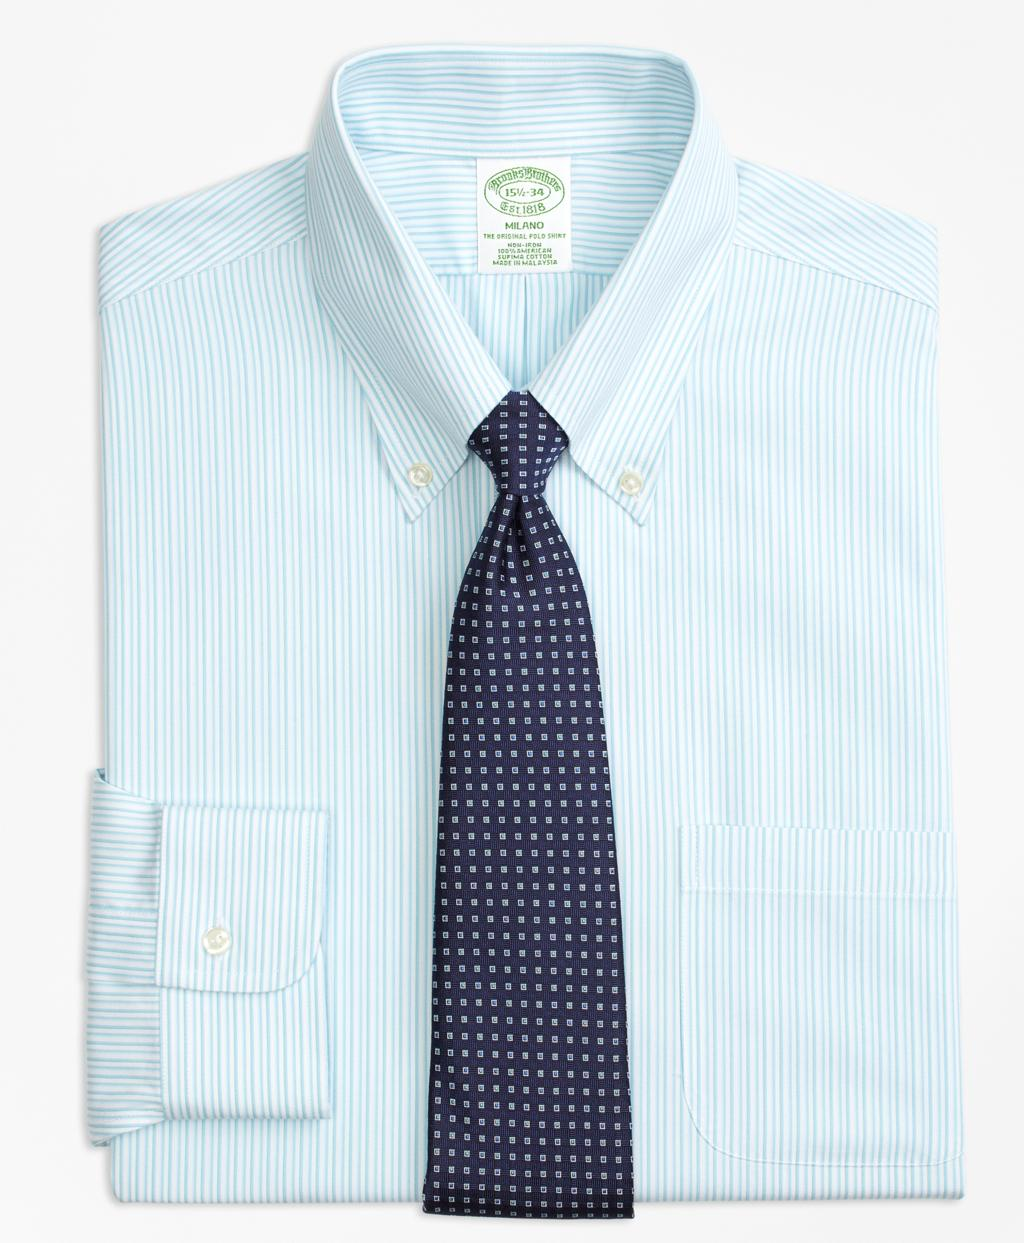 Lyst brooks brothers milano slim fit dress shirt non for Brooks brothers non iron shirts review